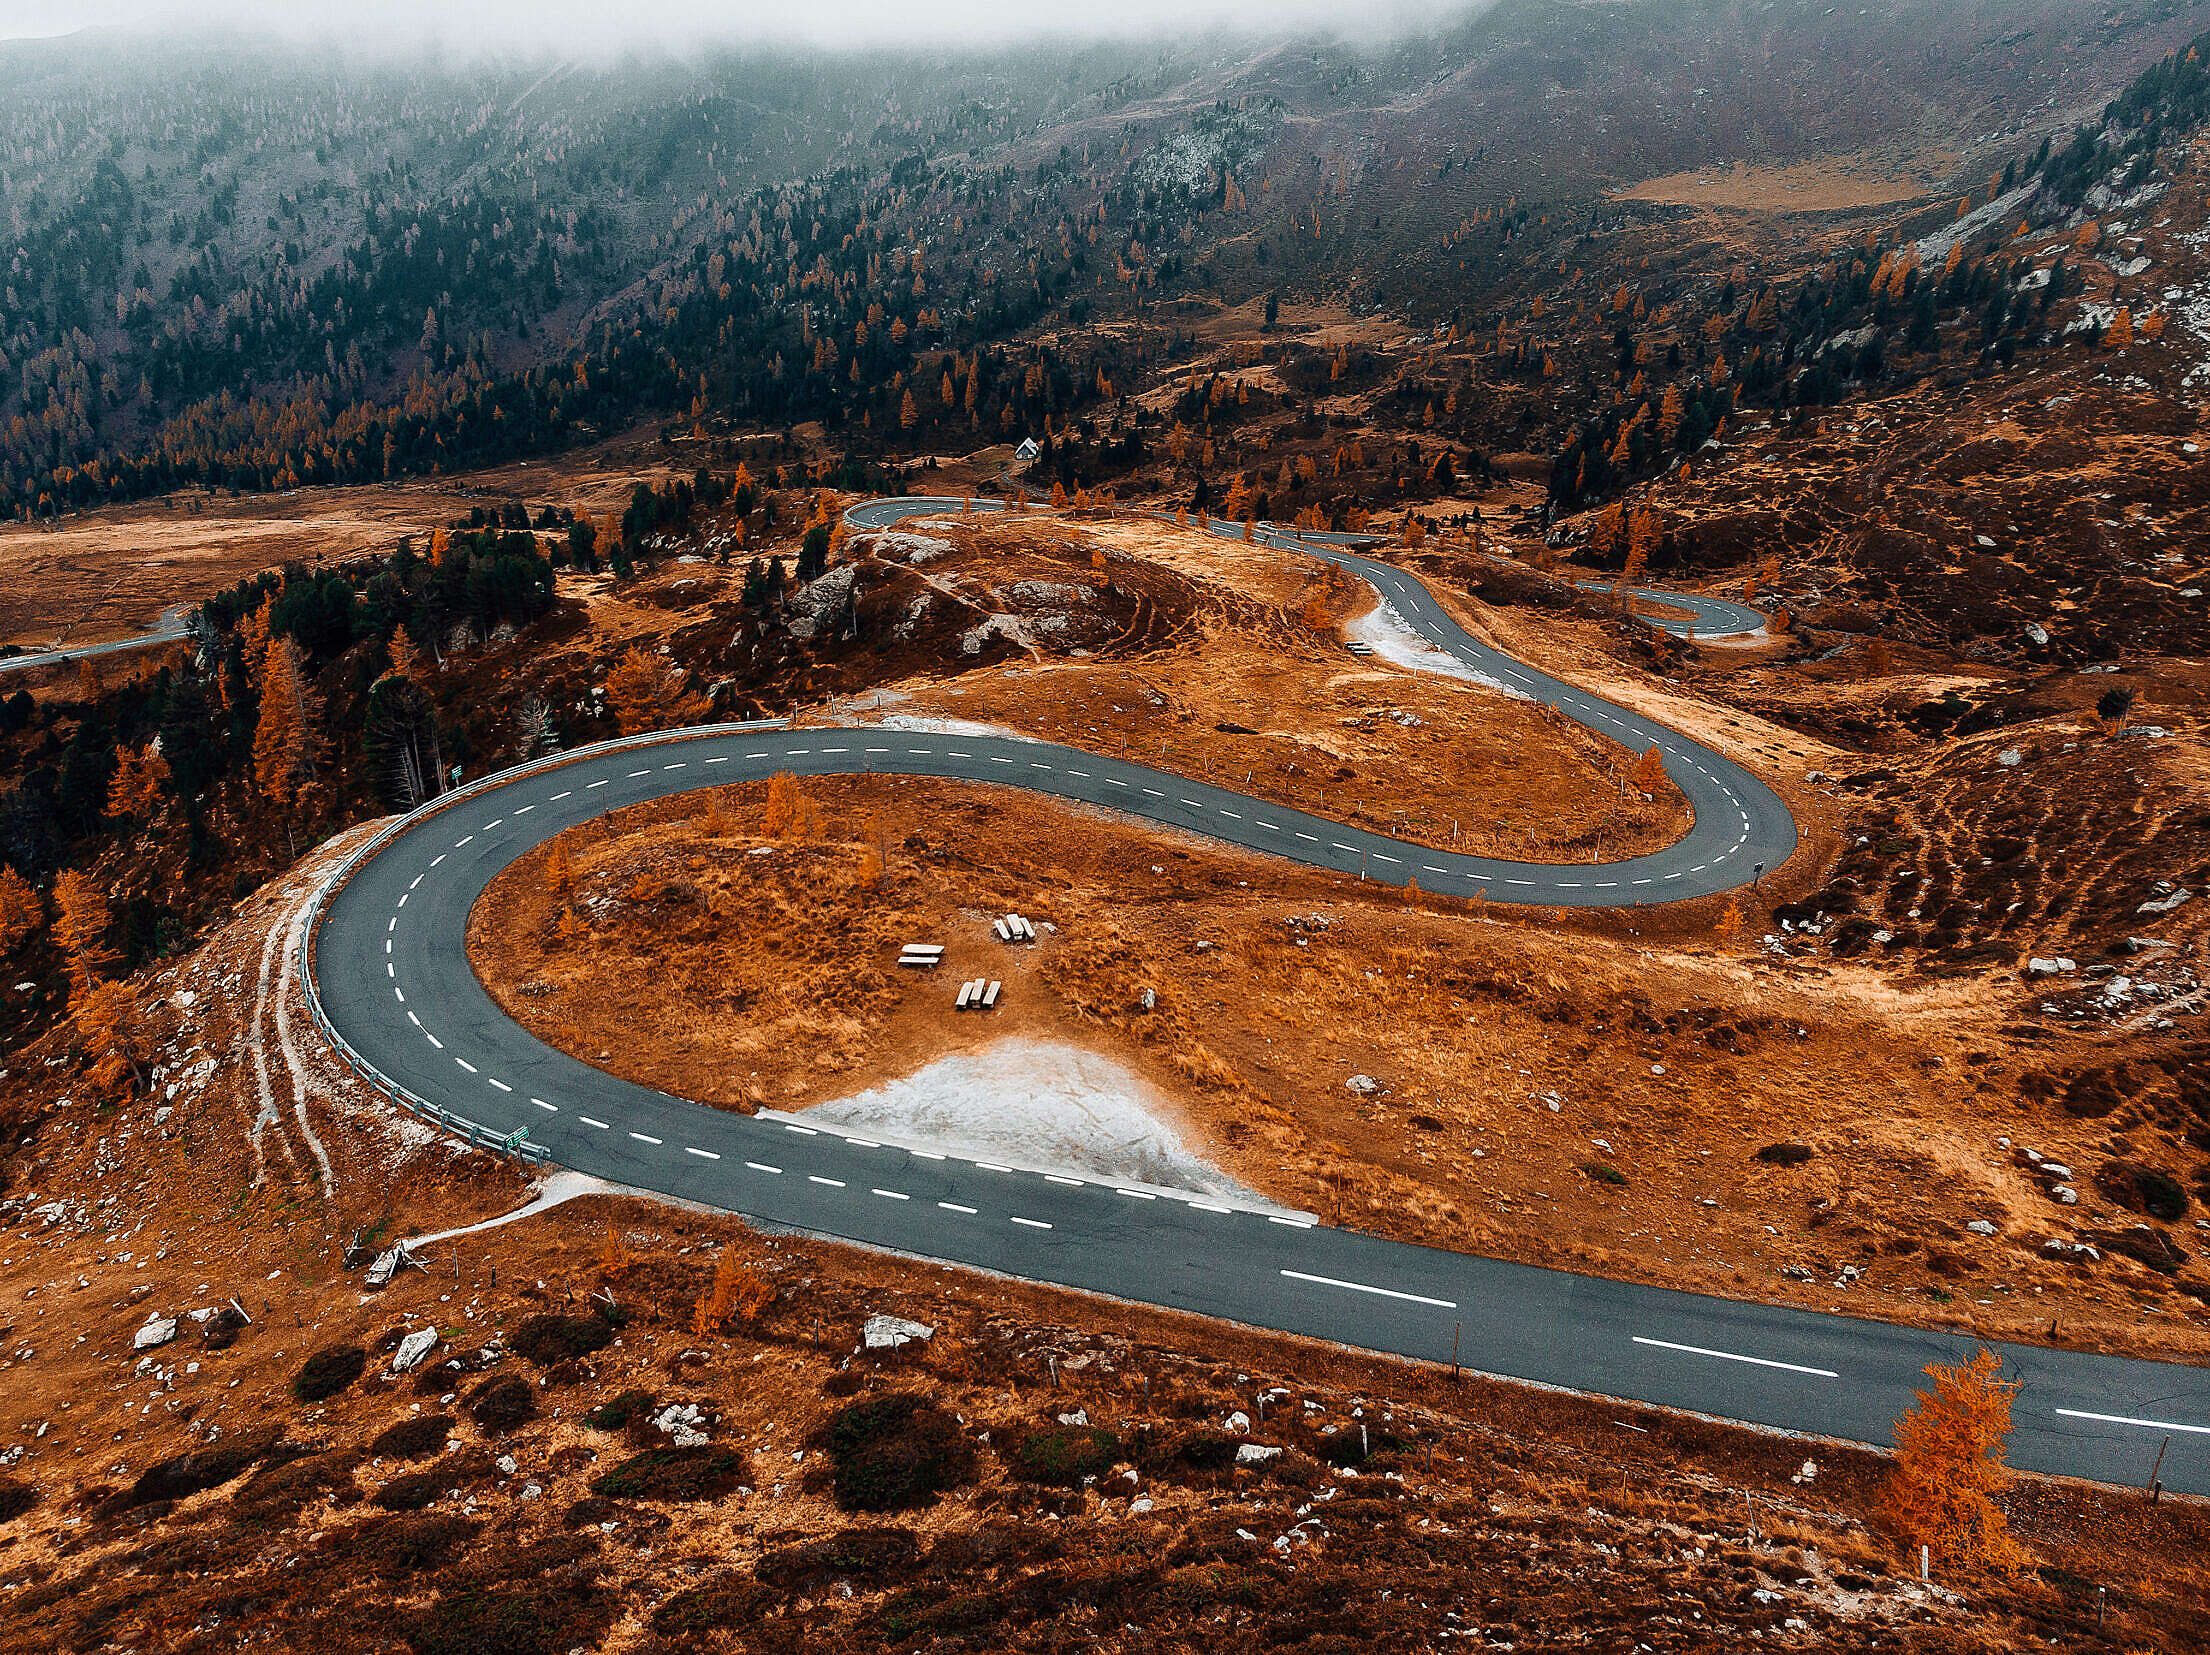 Perfect Curvy Road in The Mountains Free Stock Photo